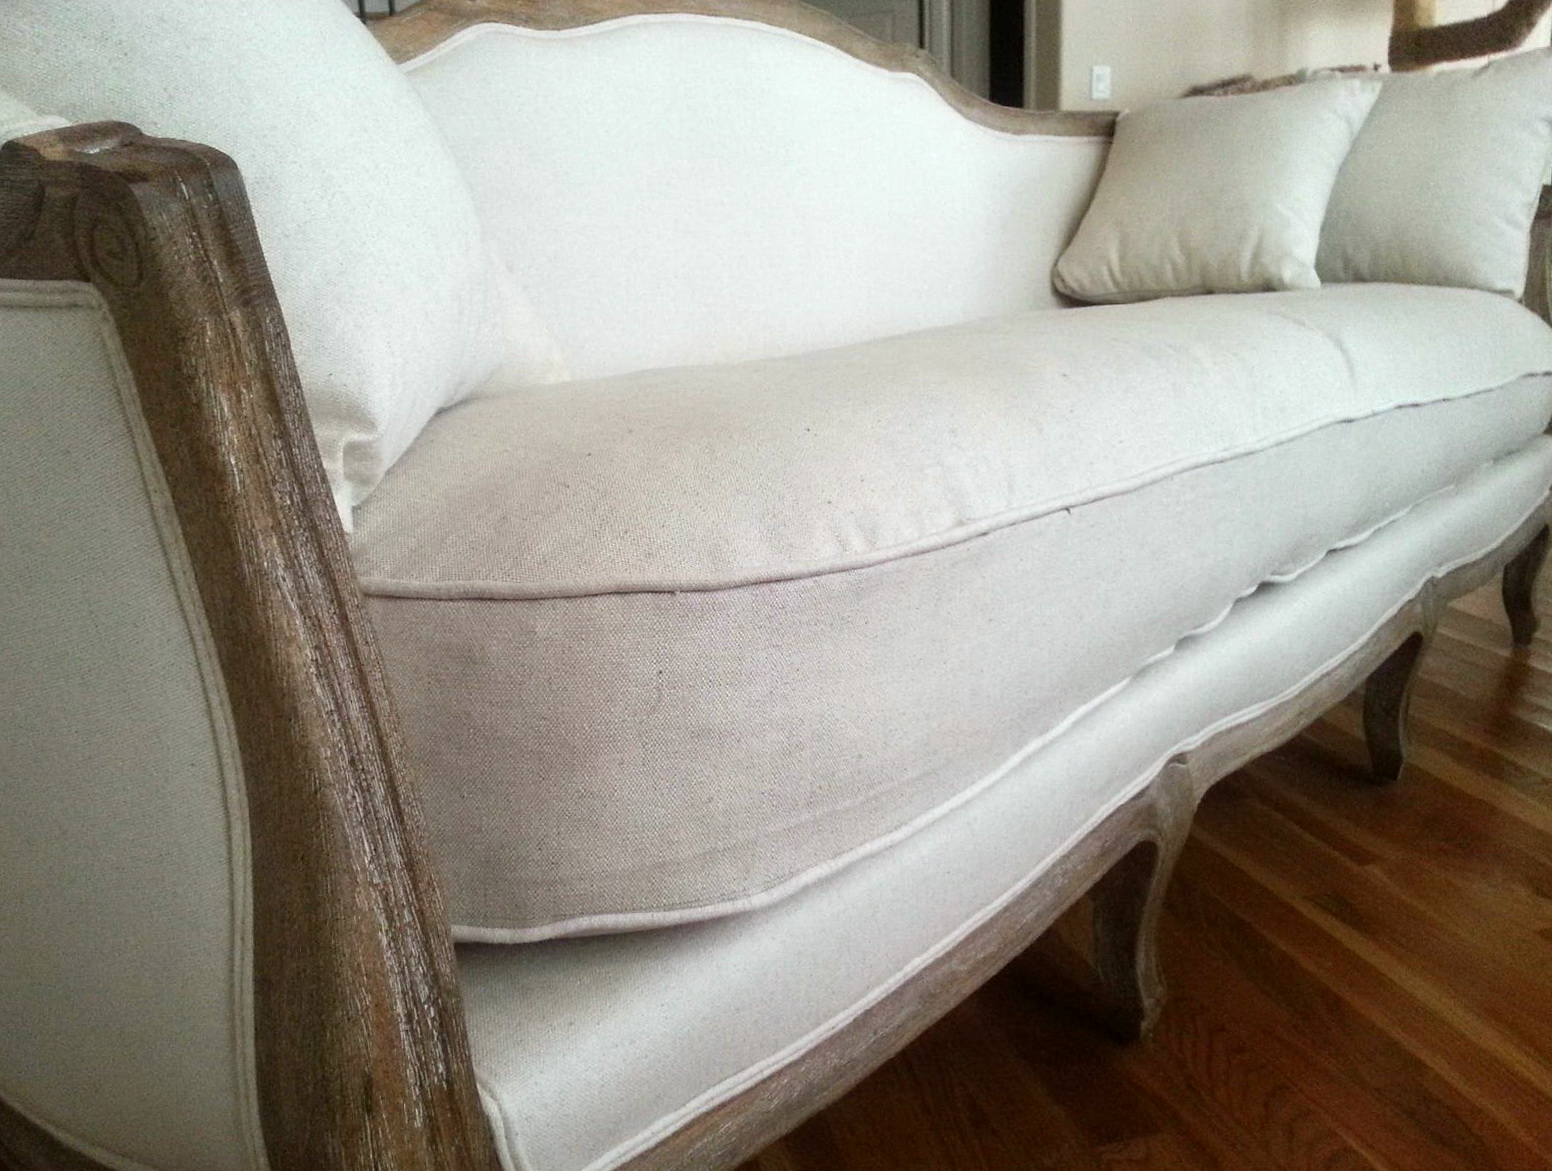 Reupholster Couch Cushions Video